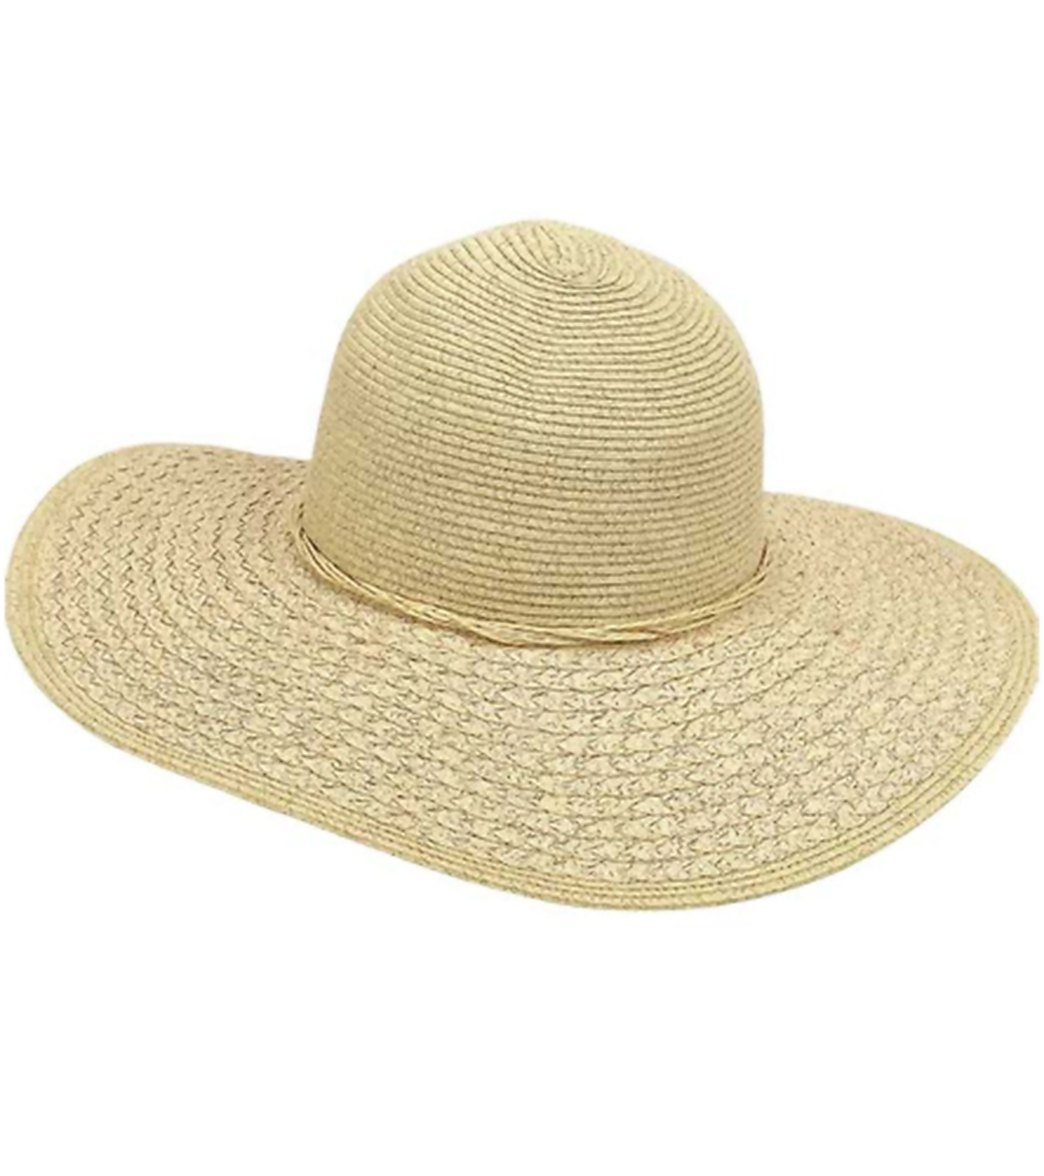 80f75f8534c Sun N Sand Bordeaux Hat at SwimOutlet.com